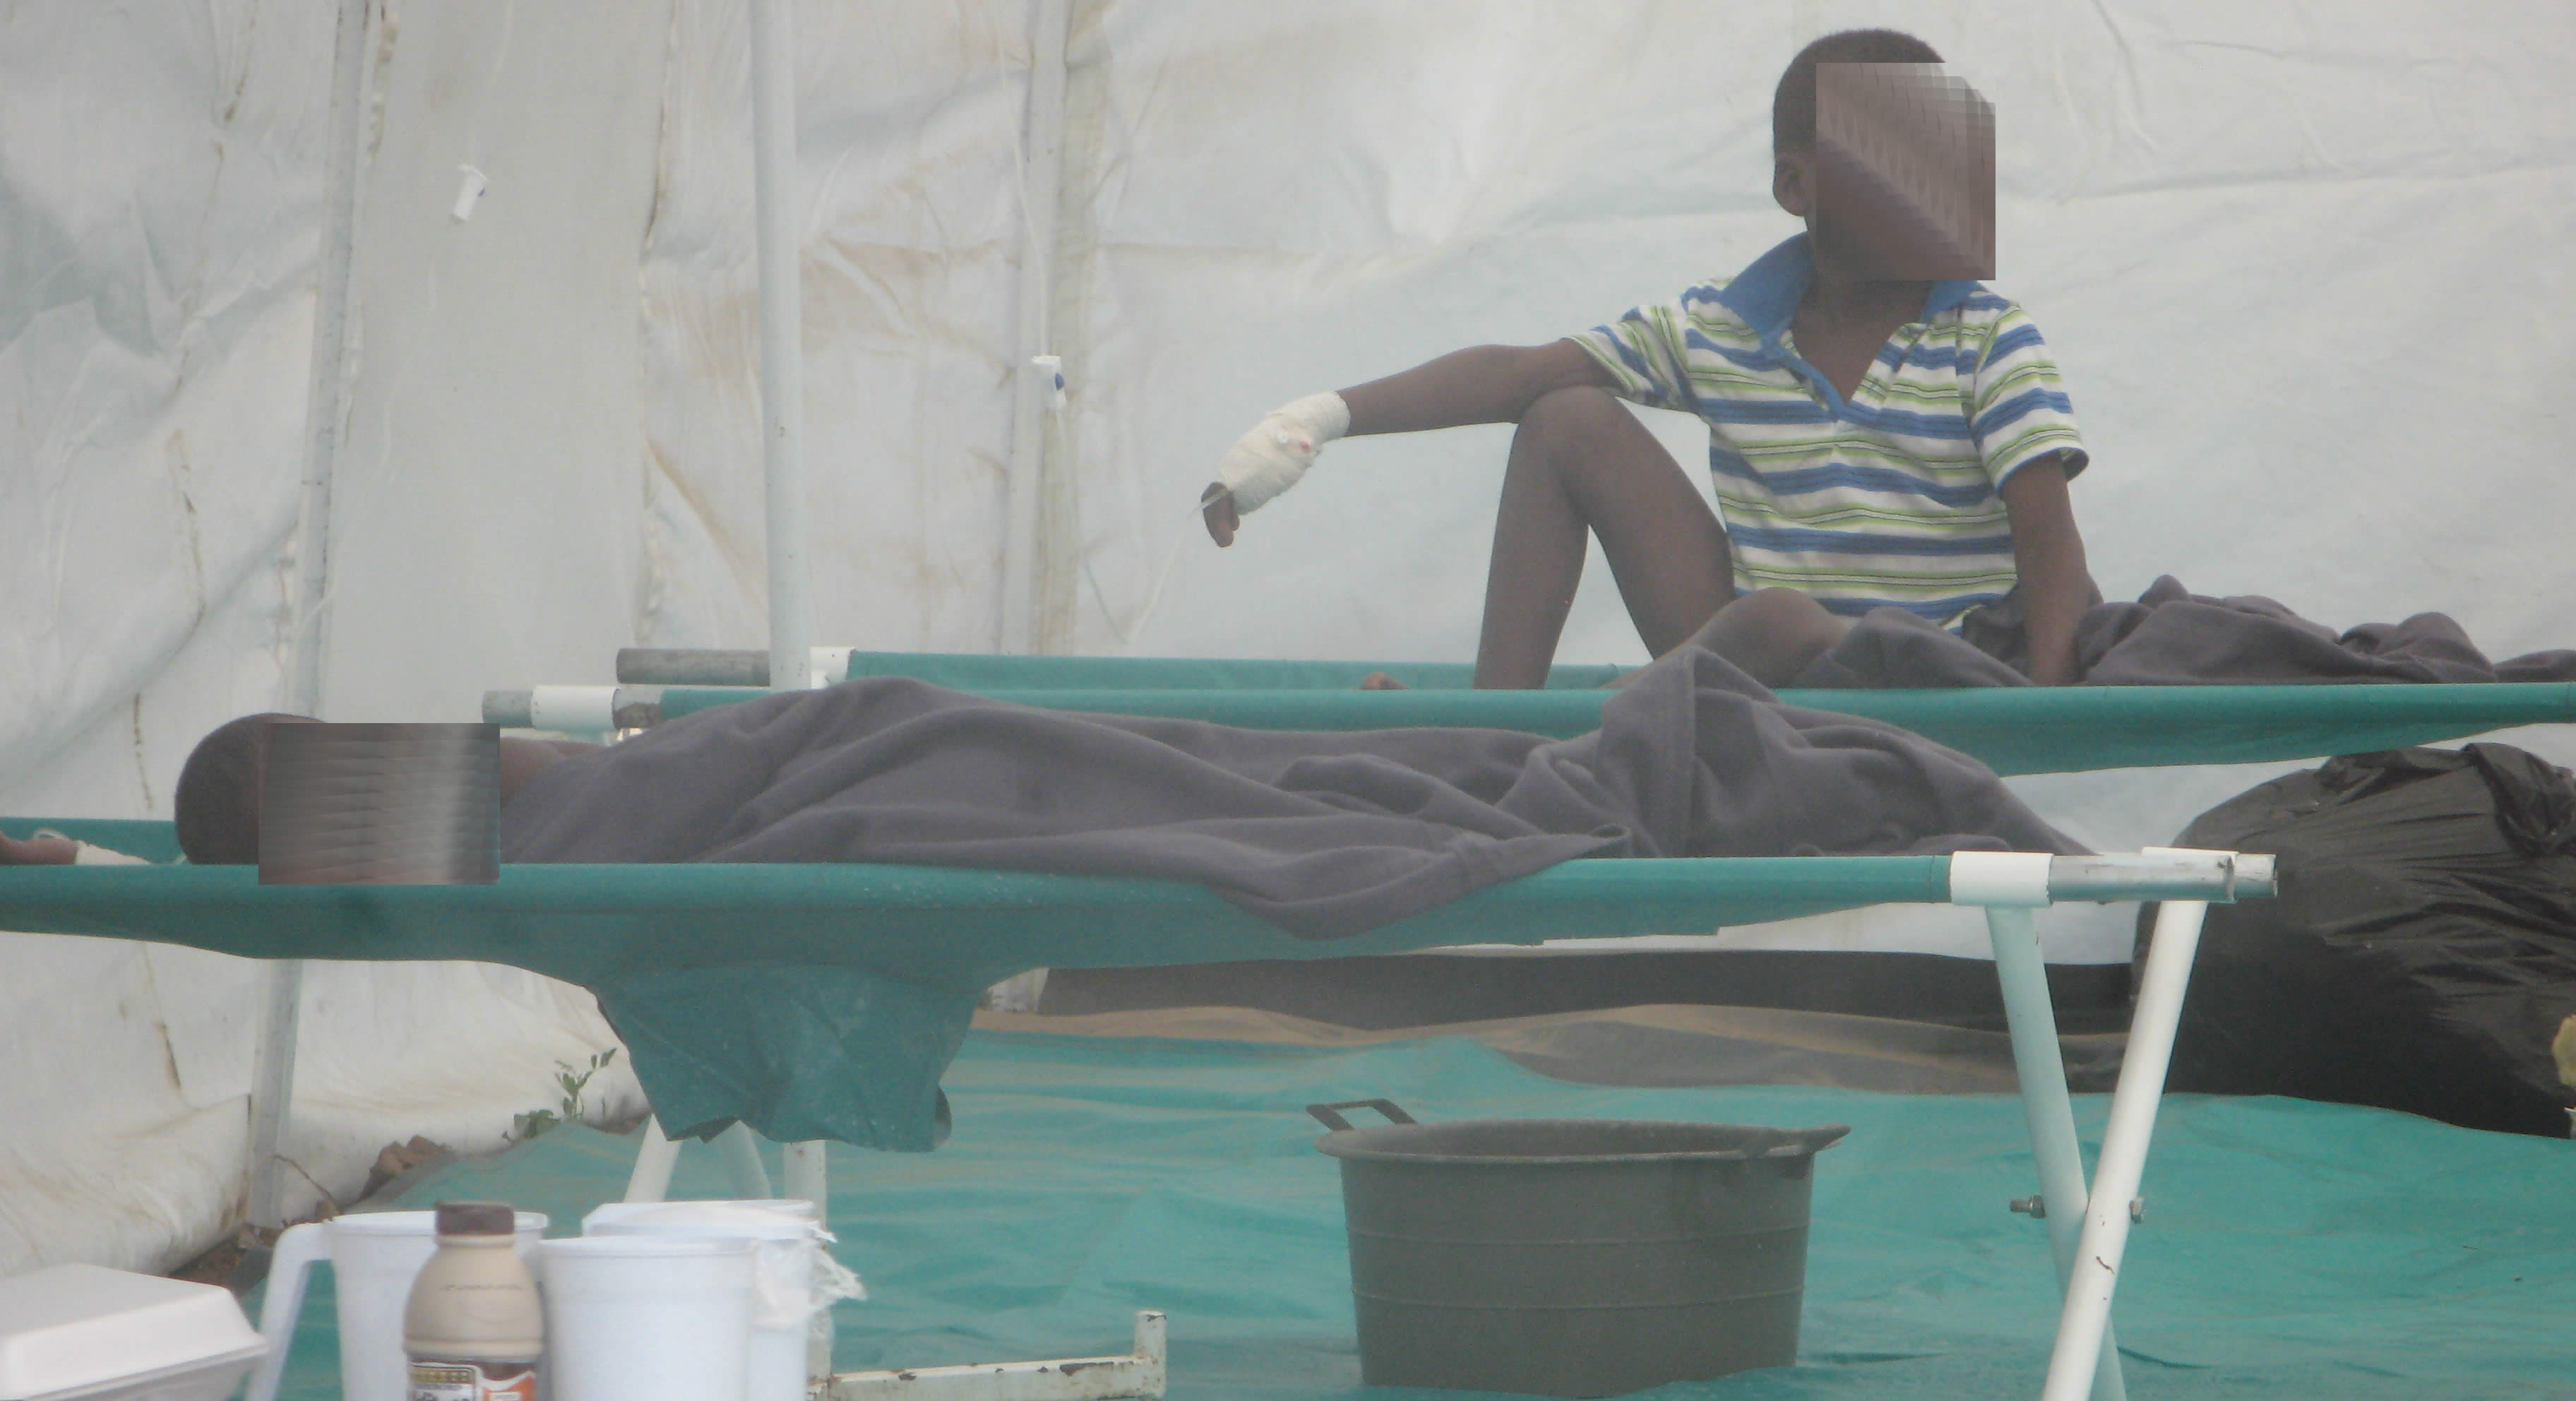 JUST IN: Gvt gives Harare $1m for cholera